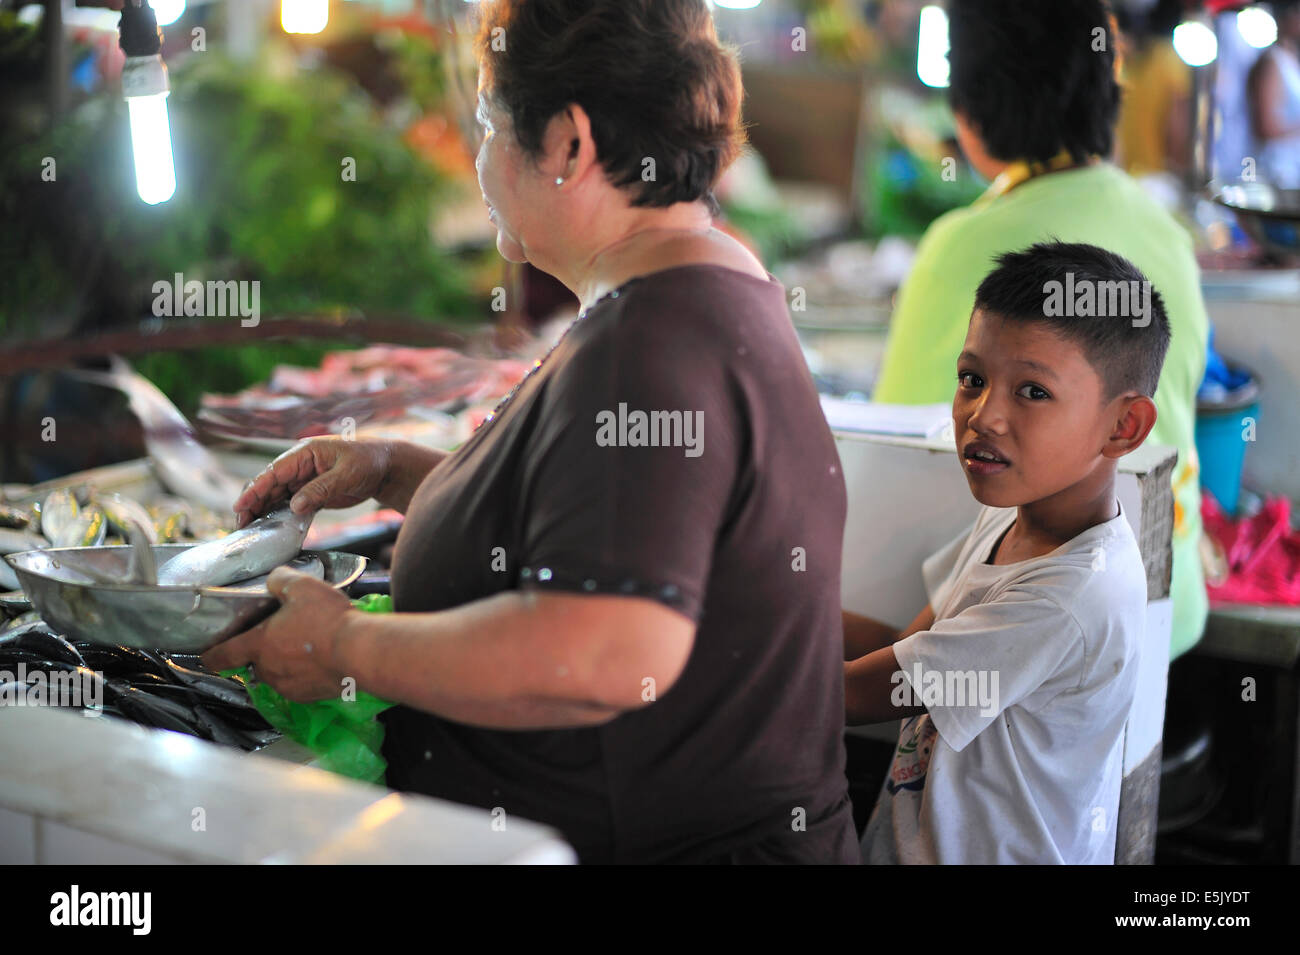 granny boy Young filipino boy helping granny in Lahug fresh food market Cebu City  Philippines